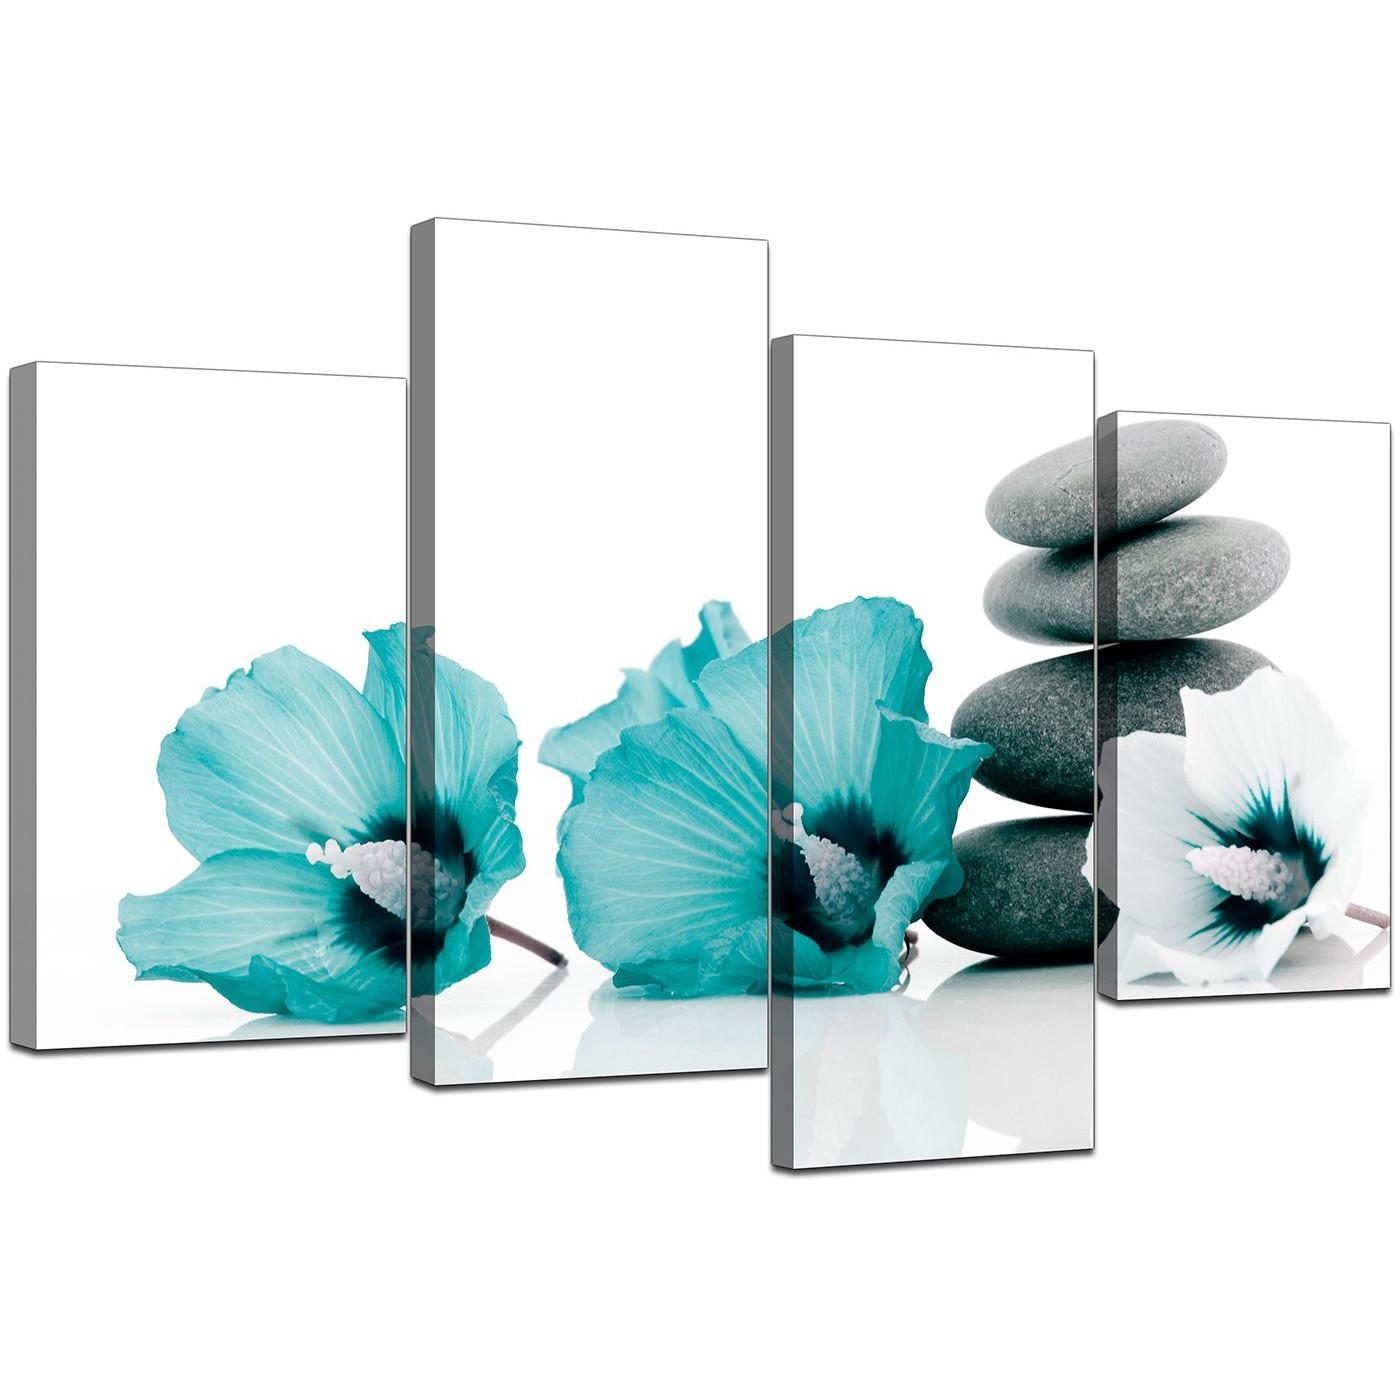 Canvas Wall Art Of Flowers In Teal For Your Living Room With Regard To Teal Flower Canvas Wall Art (Image 7 of 20)